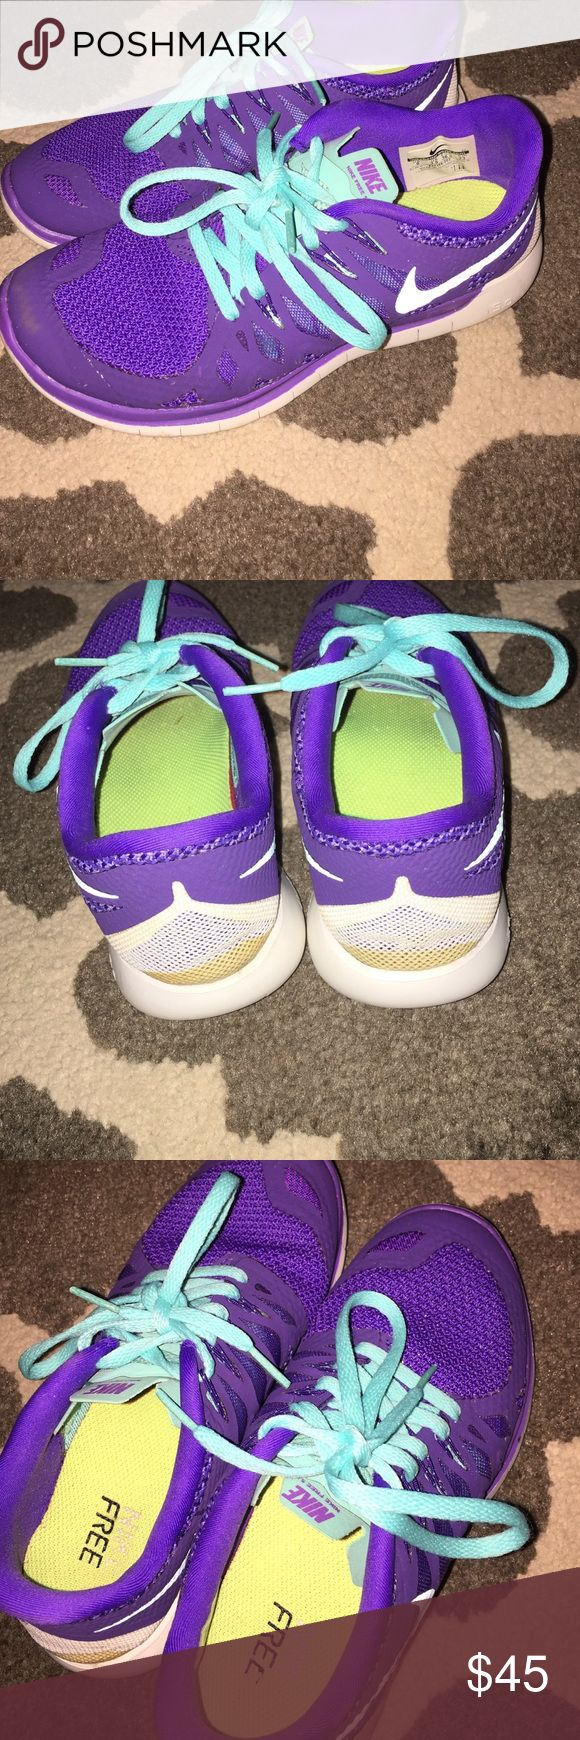 Nike Free 5.0 Purple/turquoise has a few bleached spots on side as shown in picture! Nothing too serious or noticeable! Very cute & comfortable! ‼️price is firm‼️ Nike Shoes Athletic Shoes